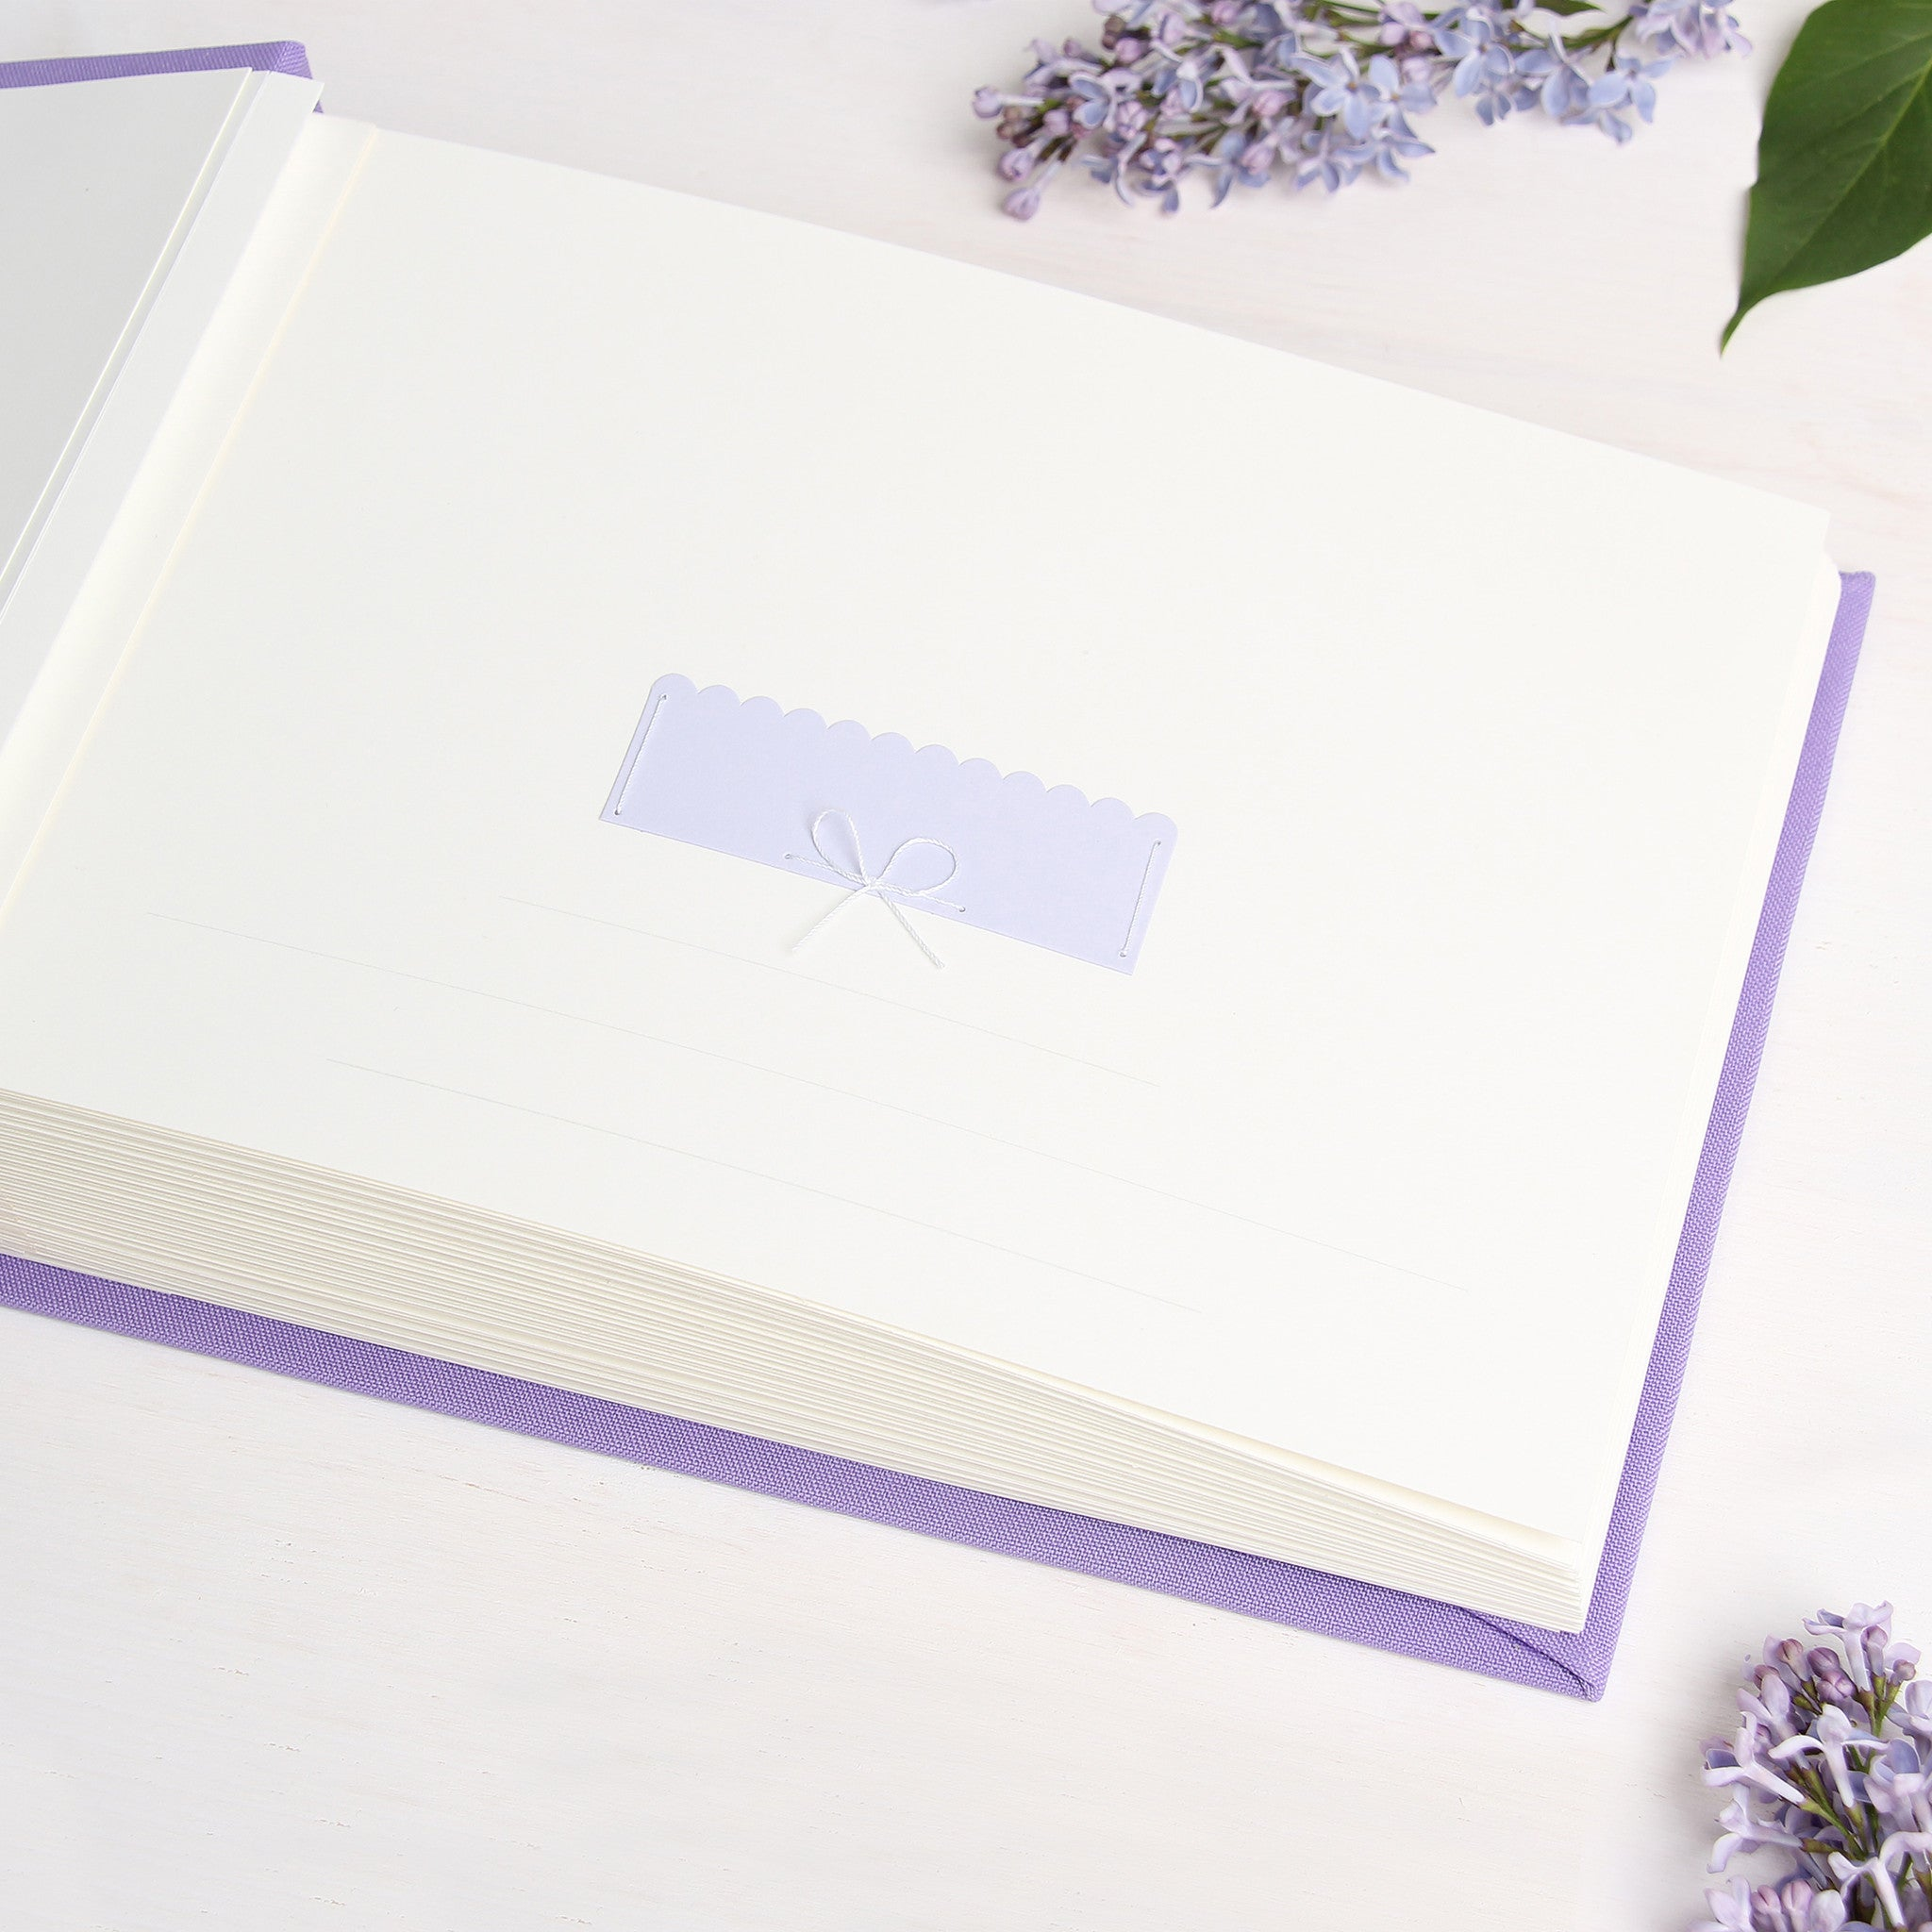 Instant Wedding Guest Book Album Lilac with White Lettering - Liumy